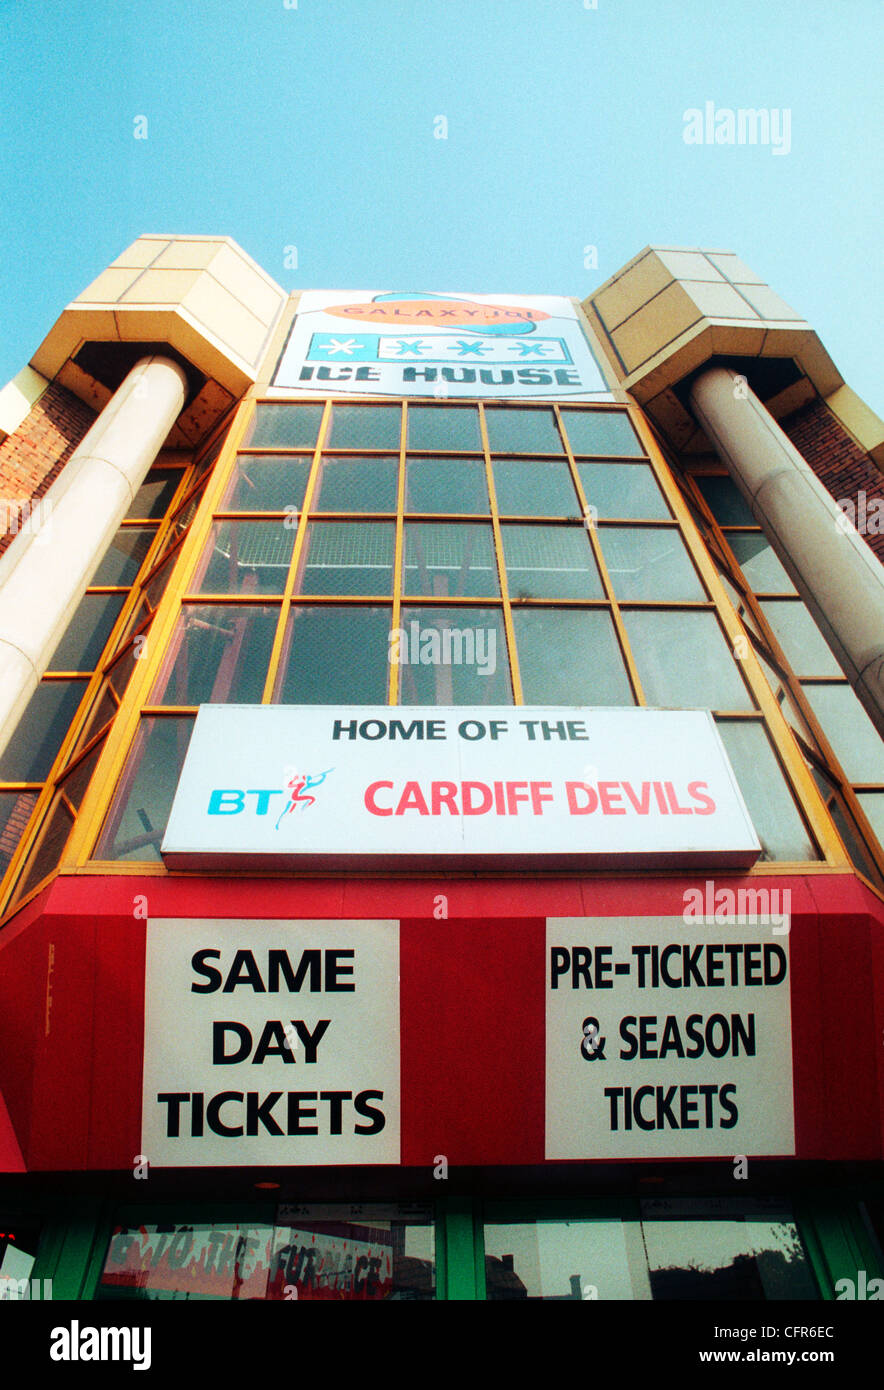 The former Cardiff Ice Rink - one time home to the Cardiff Devils Ice Hockey team, which has since been demolished. - Stock Image